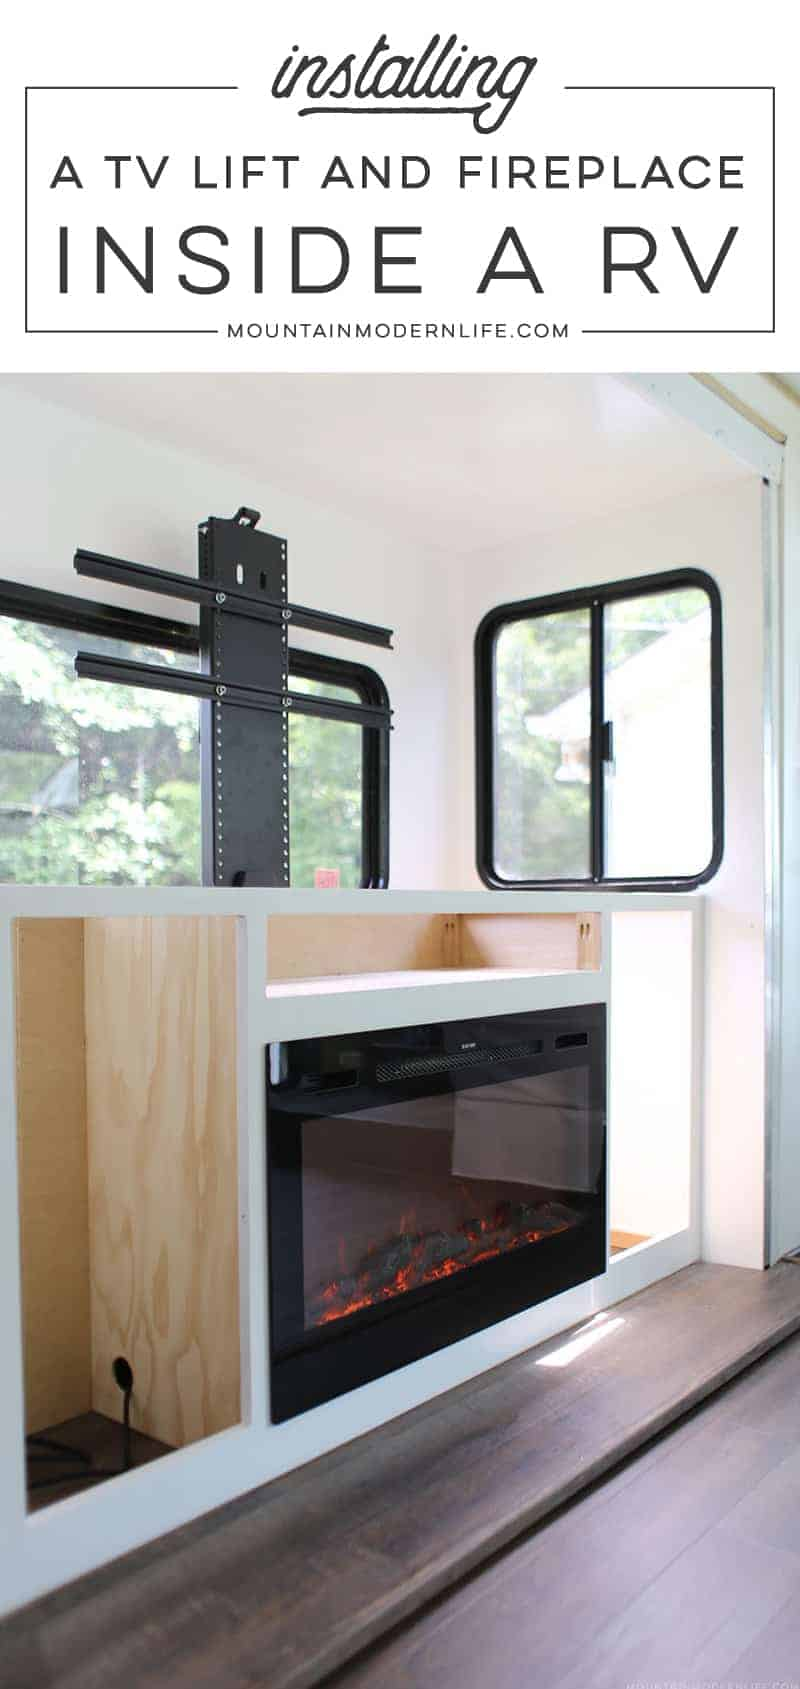 Renovating your motorhome? Come see how we're installing a hidden TV lift & electric fireplace inside our RV! MountainModernLife.com